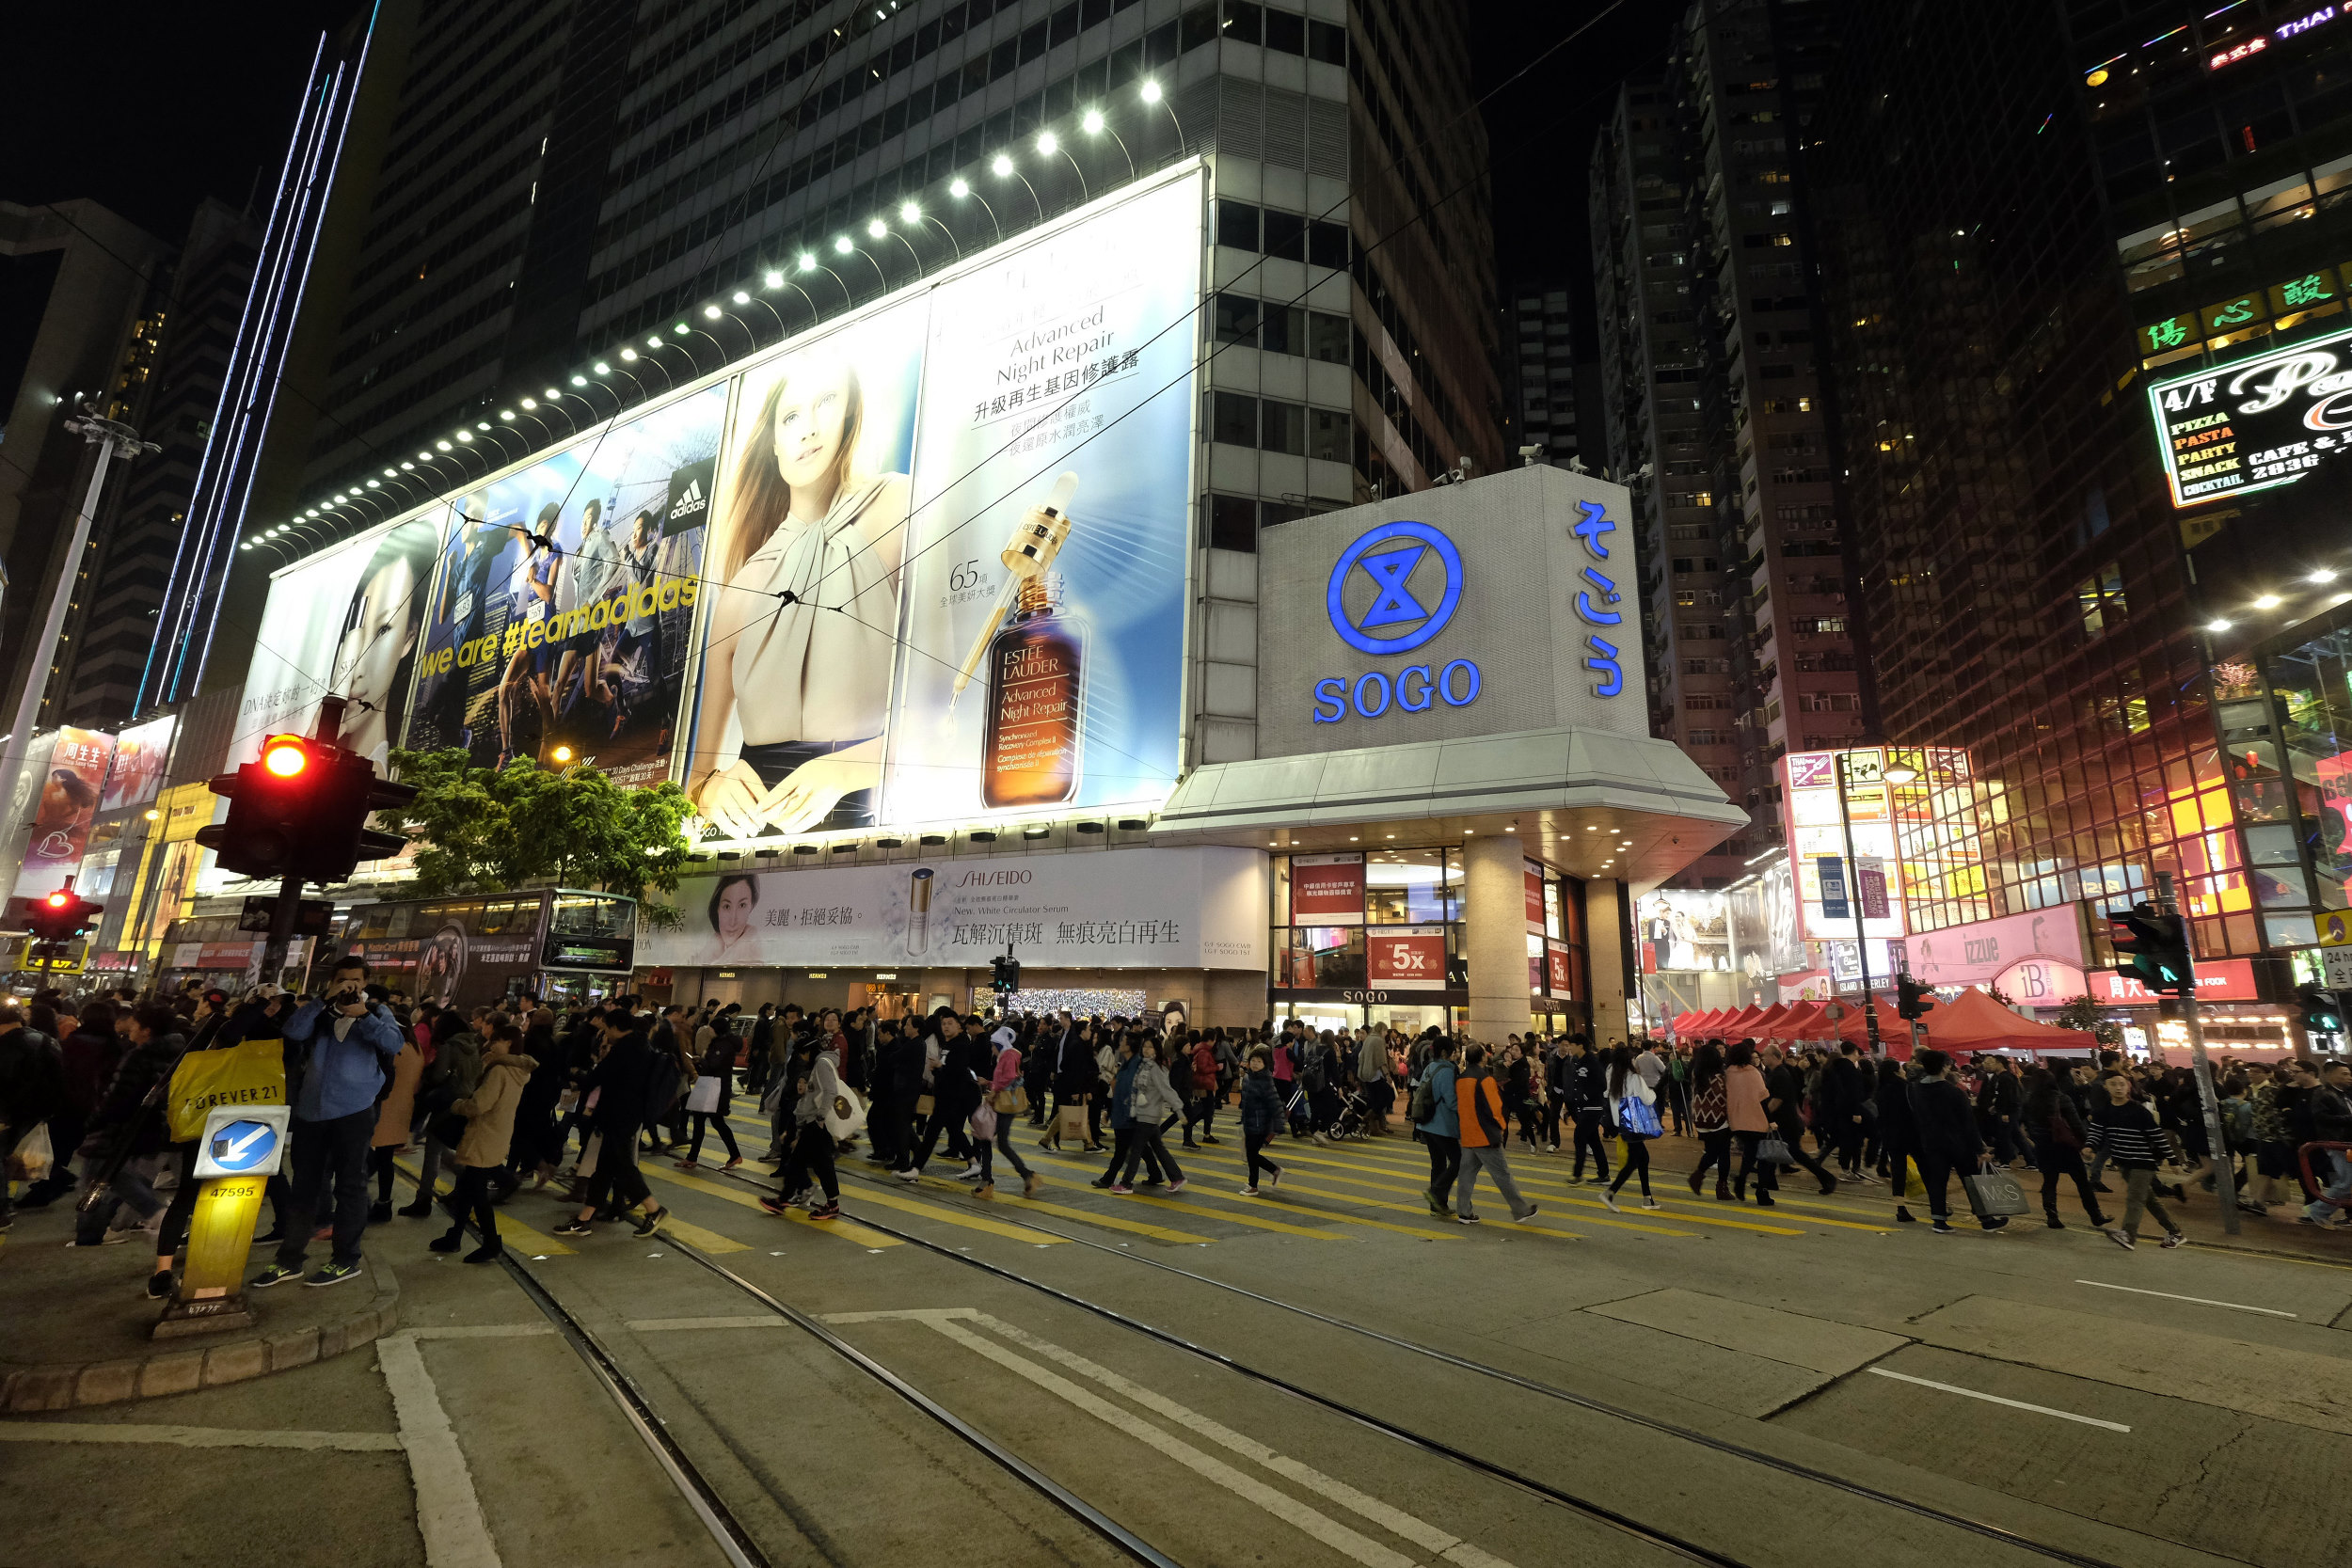 Hong Kong Causeway Bay Straatbeeld Billboards Sogo